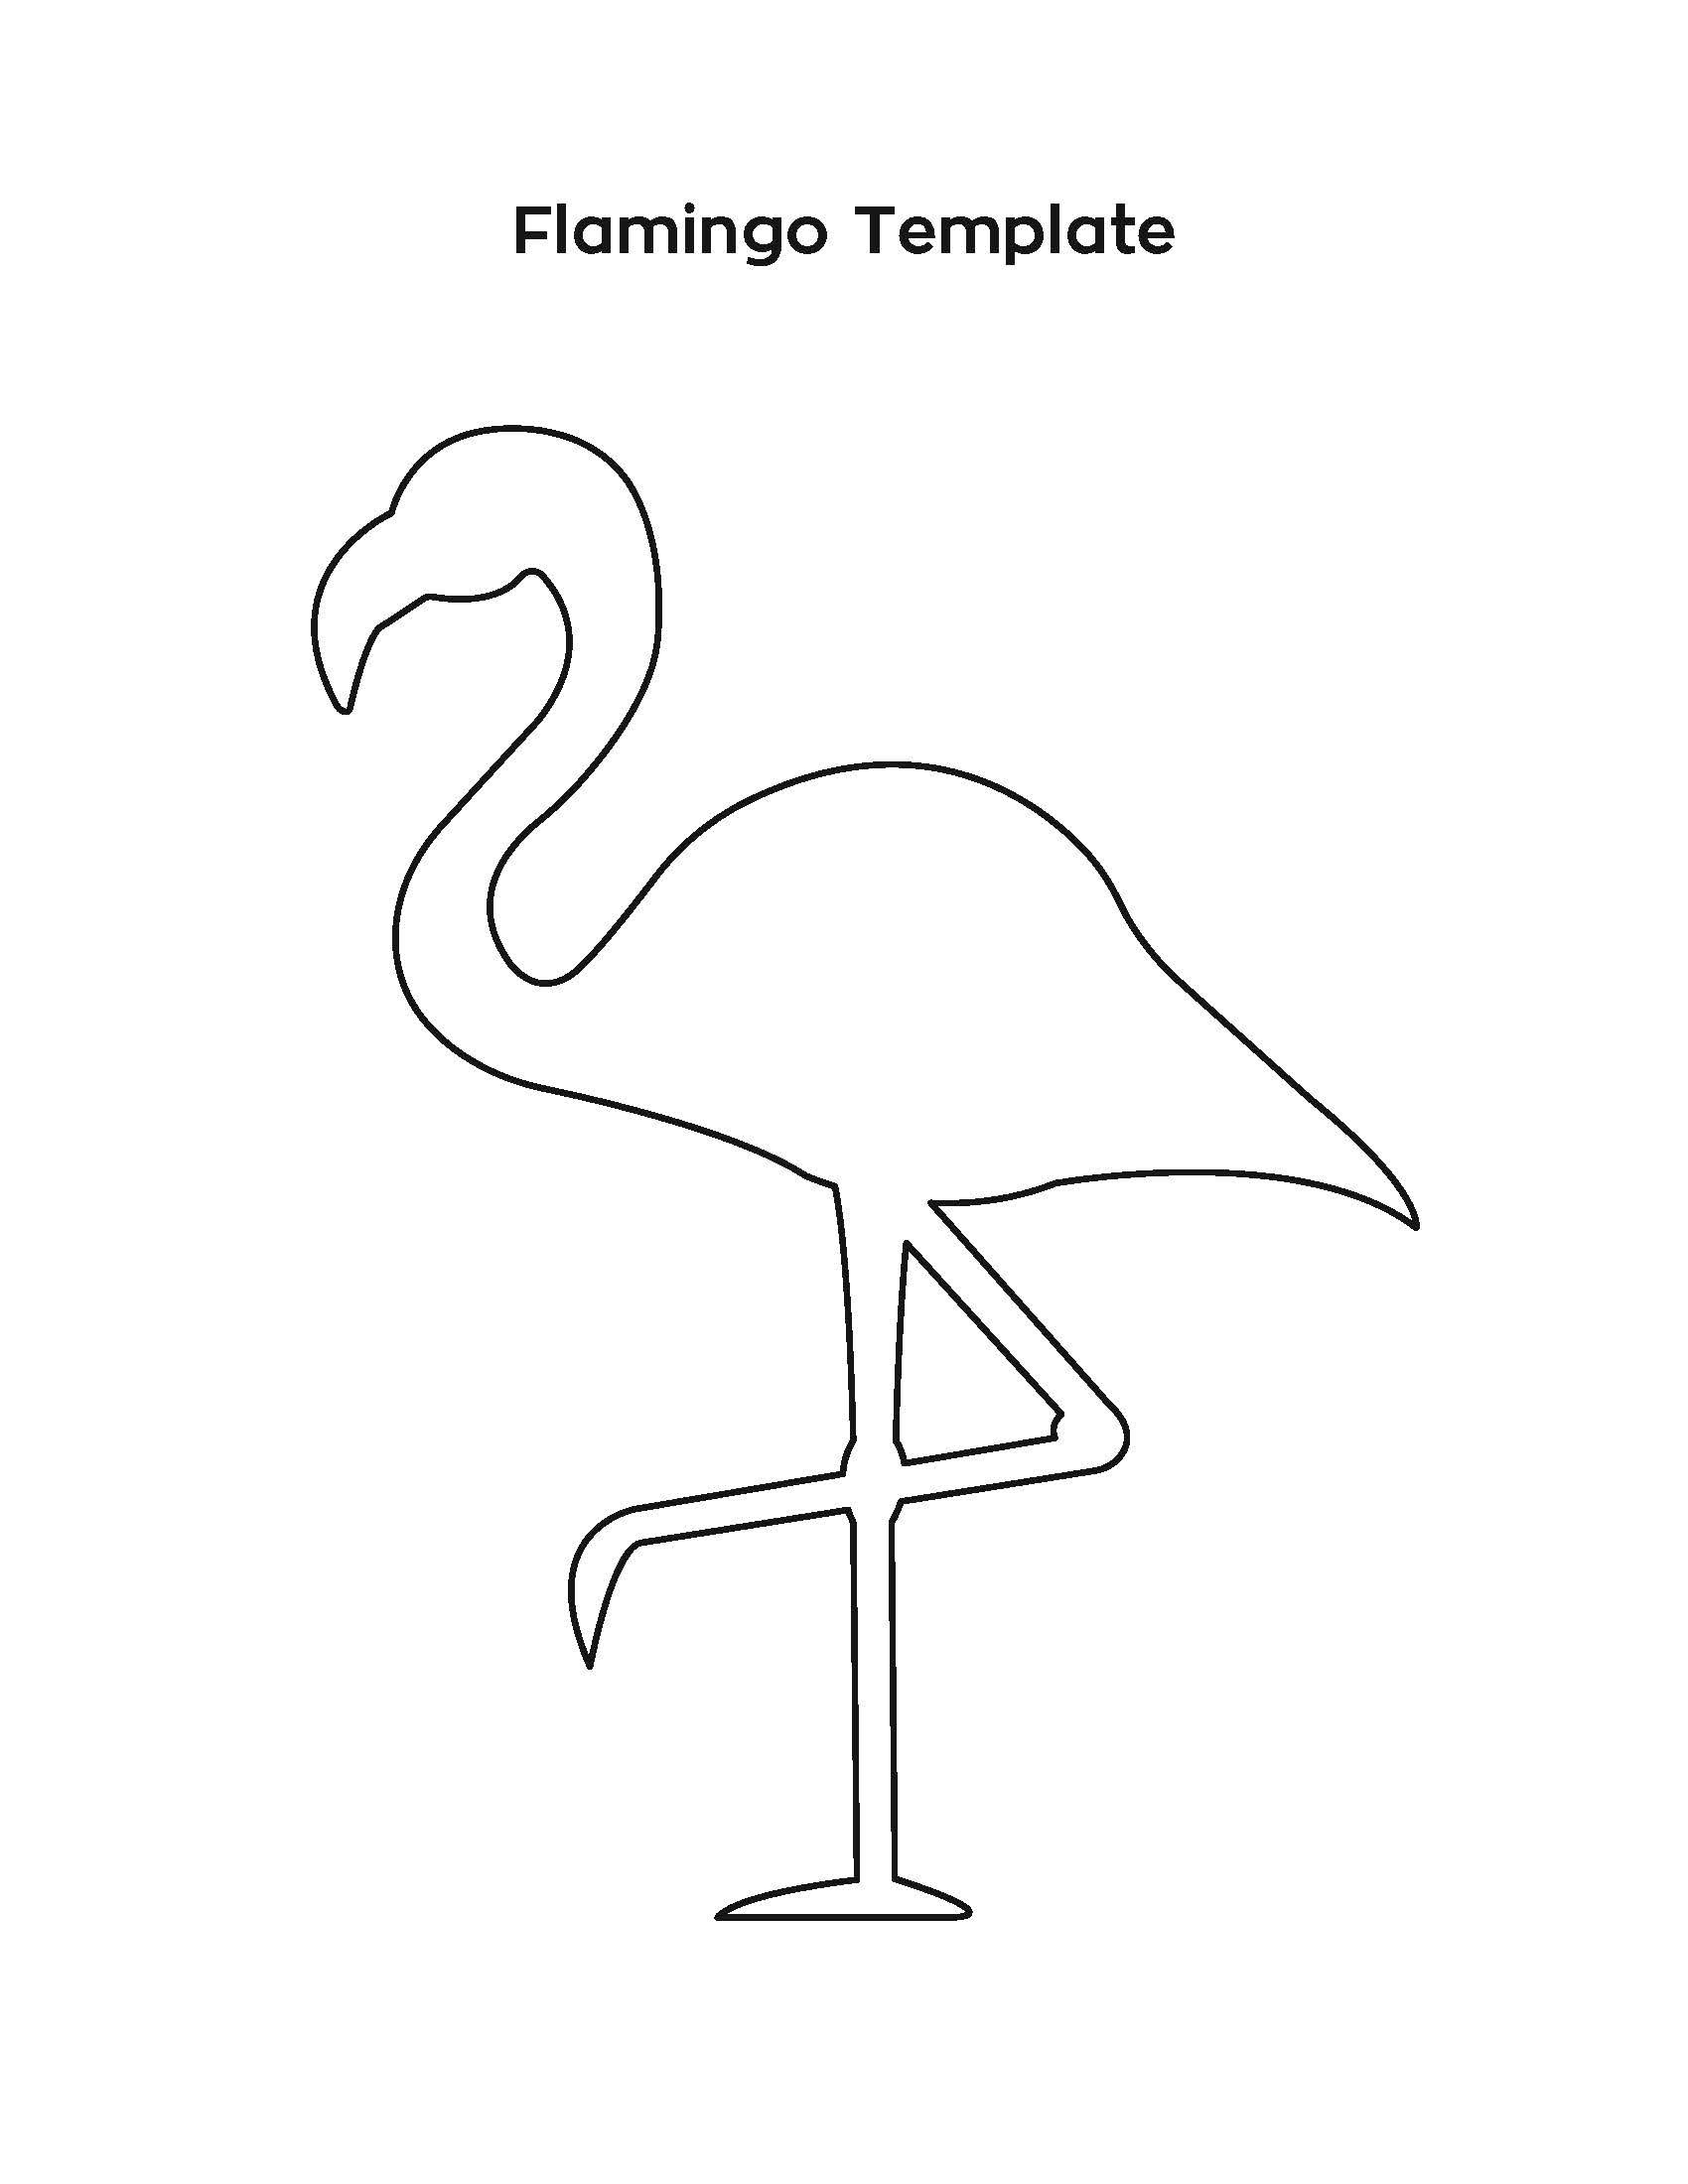 Flamingo Template | Little Lamb - Adventurer Club ... Flamingo Outline